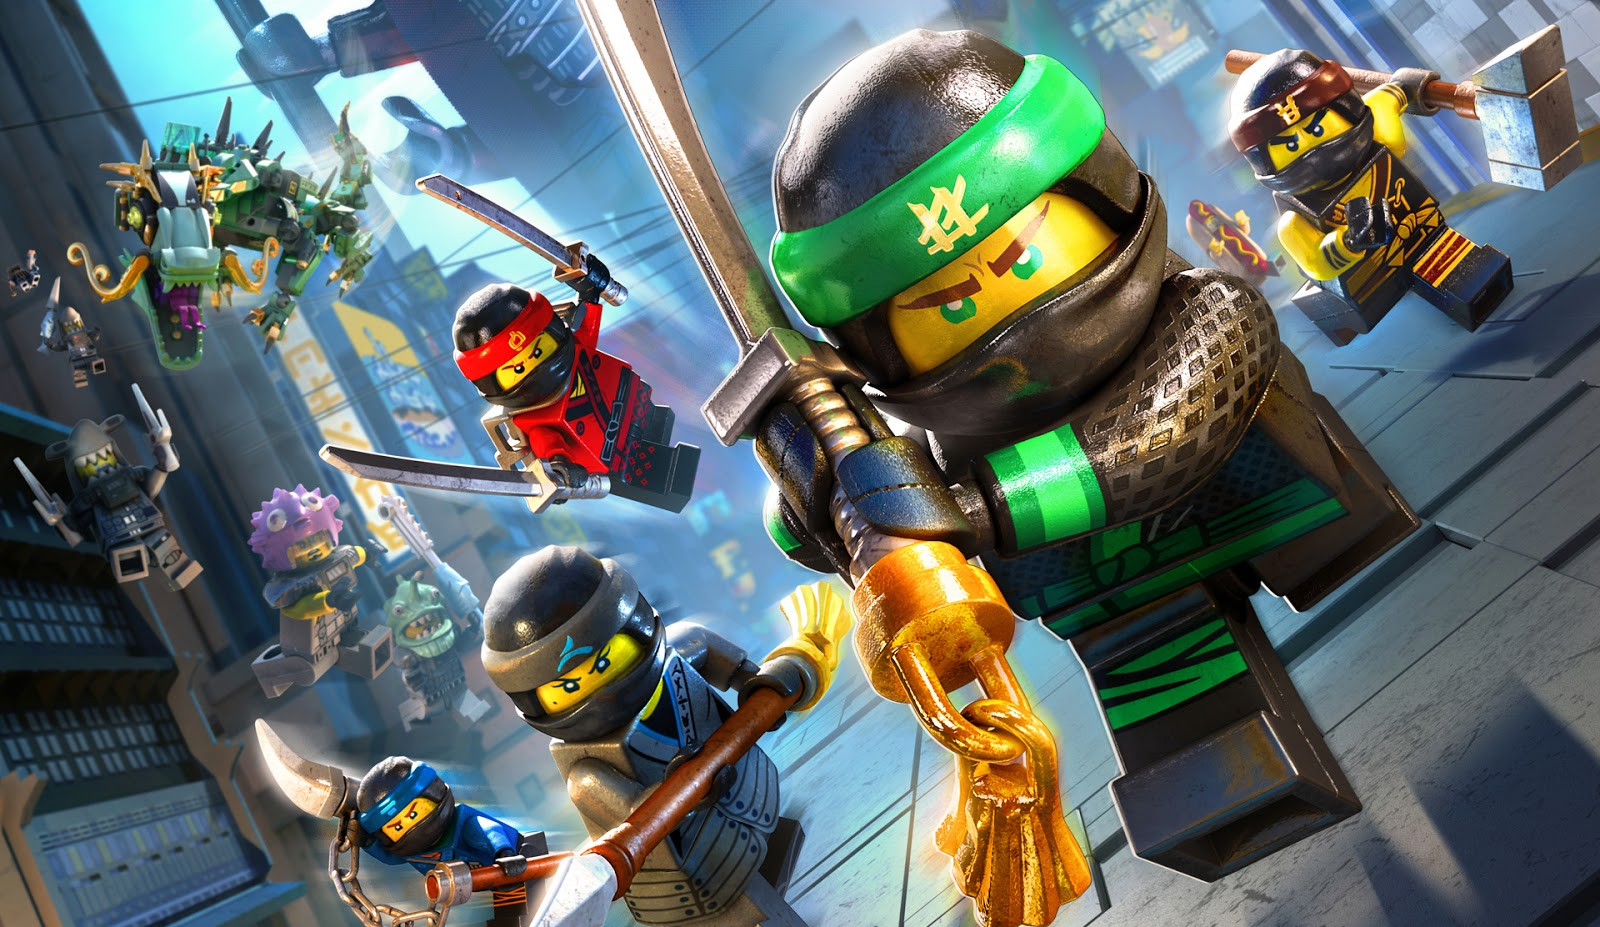 Infinite Earths  The LEGO Ninjago Movie Is A Chip Off The Old Brick With the release of The LEGO Ninjago Movie this past Fall  the  family friendly franchise expanded yet again  This time  we venture to the  city of Ninjago